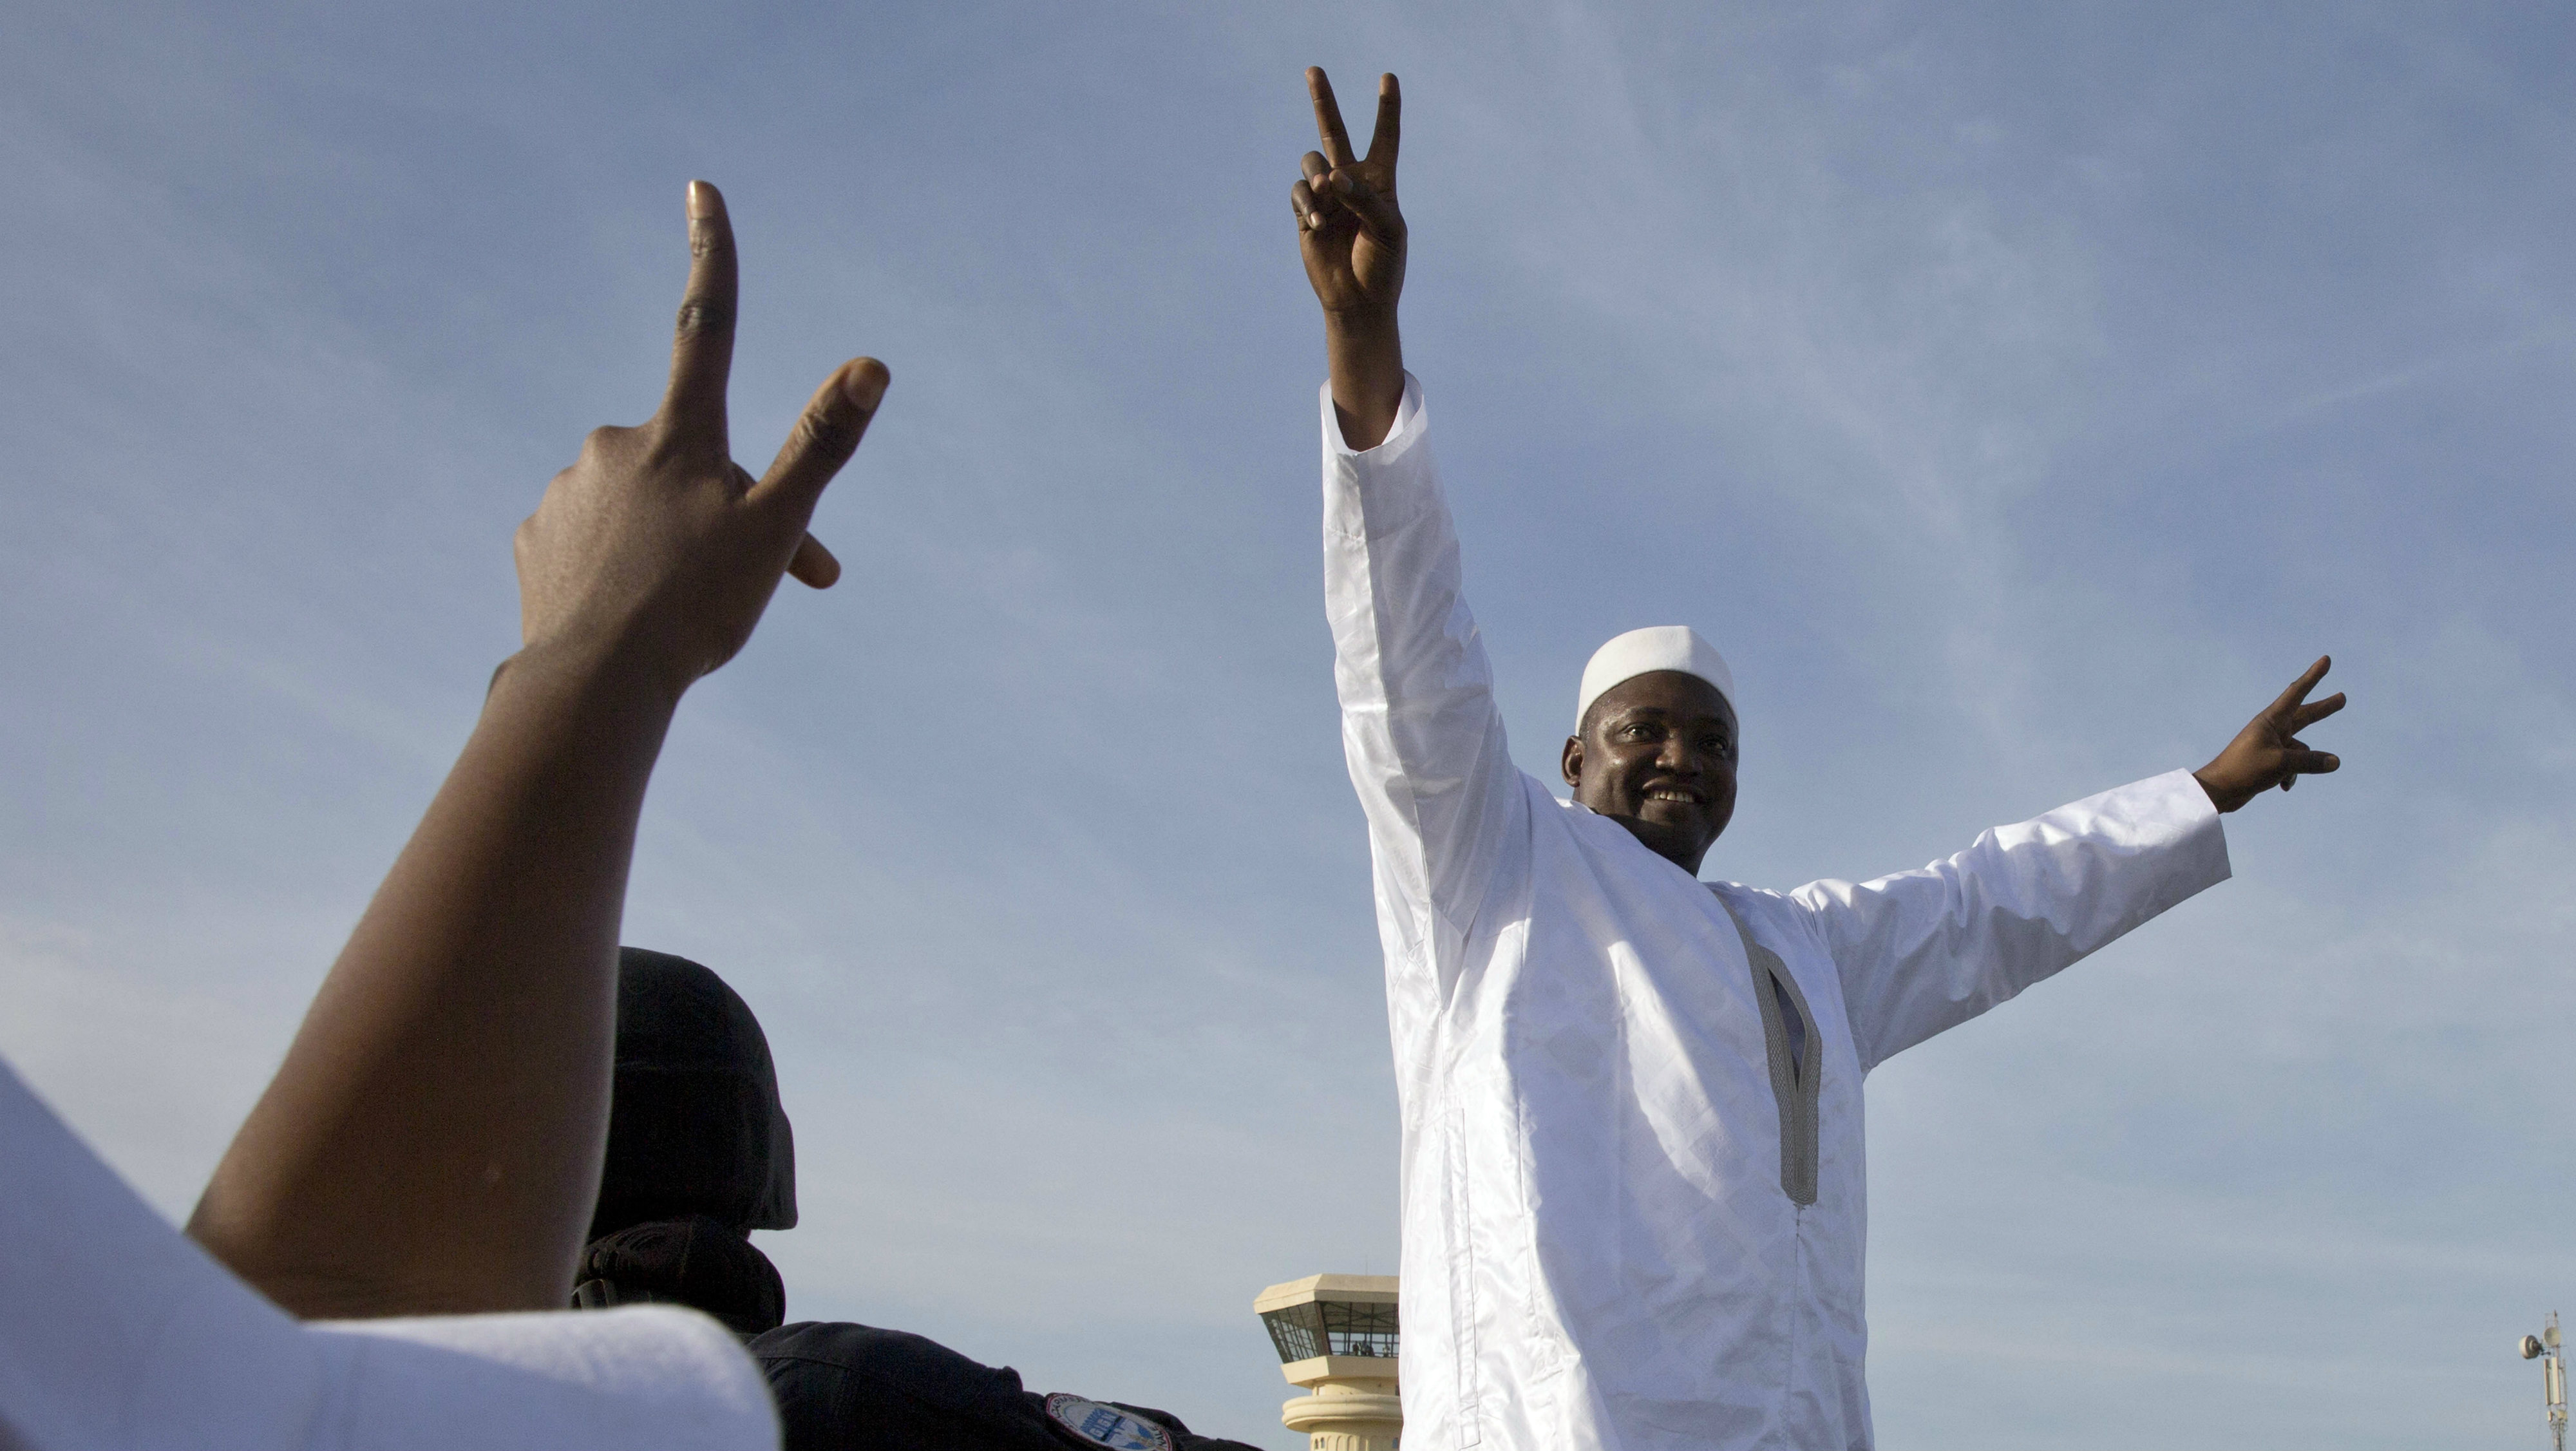 Gambian President Adama Barrow greets the crowds after arriving at Banjul airport in Gambia, Thursday Jan. 26, 2017, after flying in from Dakar, Senegal. Gambia's new president has finally arrived in the country, a week after taking the oath of office abroad amid a whirlwind political crisis. Here's a look at the tumble of events that led to Adama Barrow's return — and the exile of the country's longtime leader.